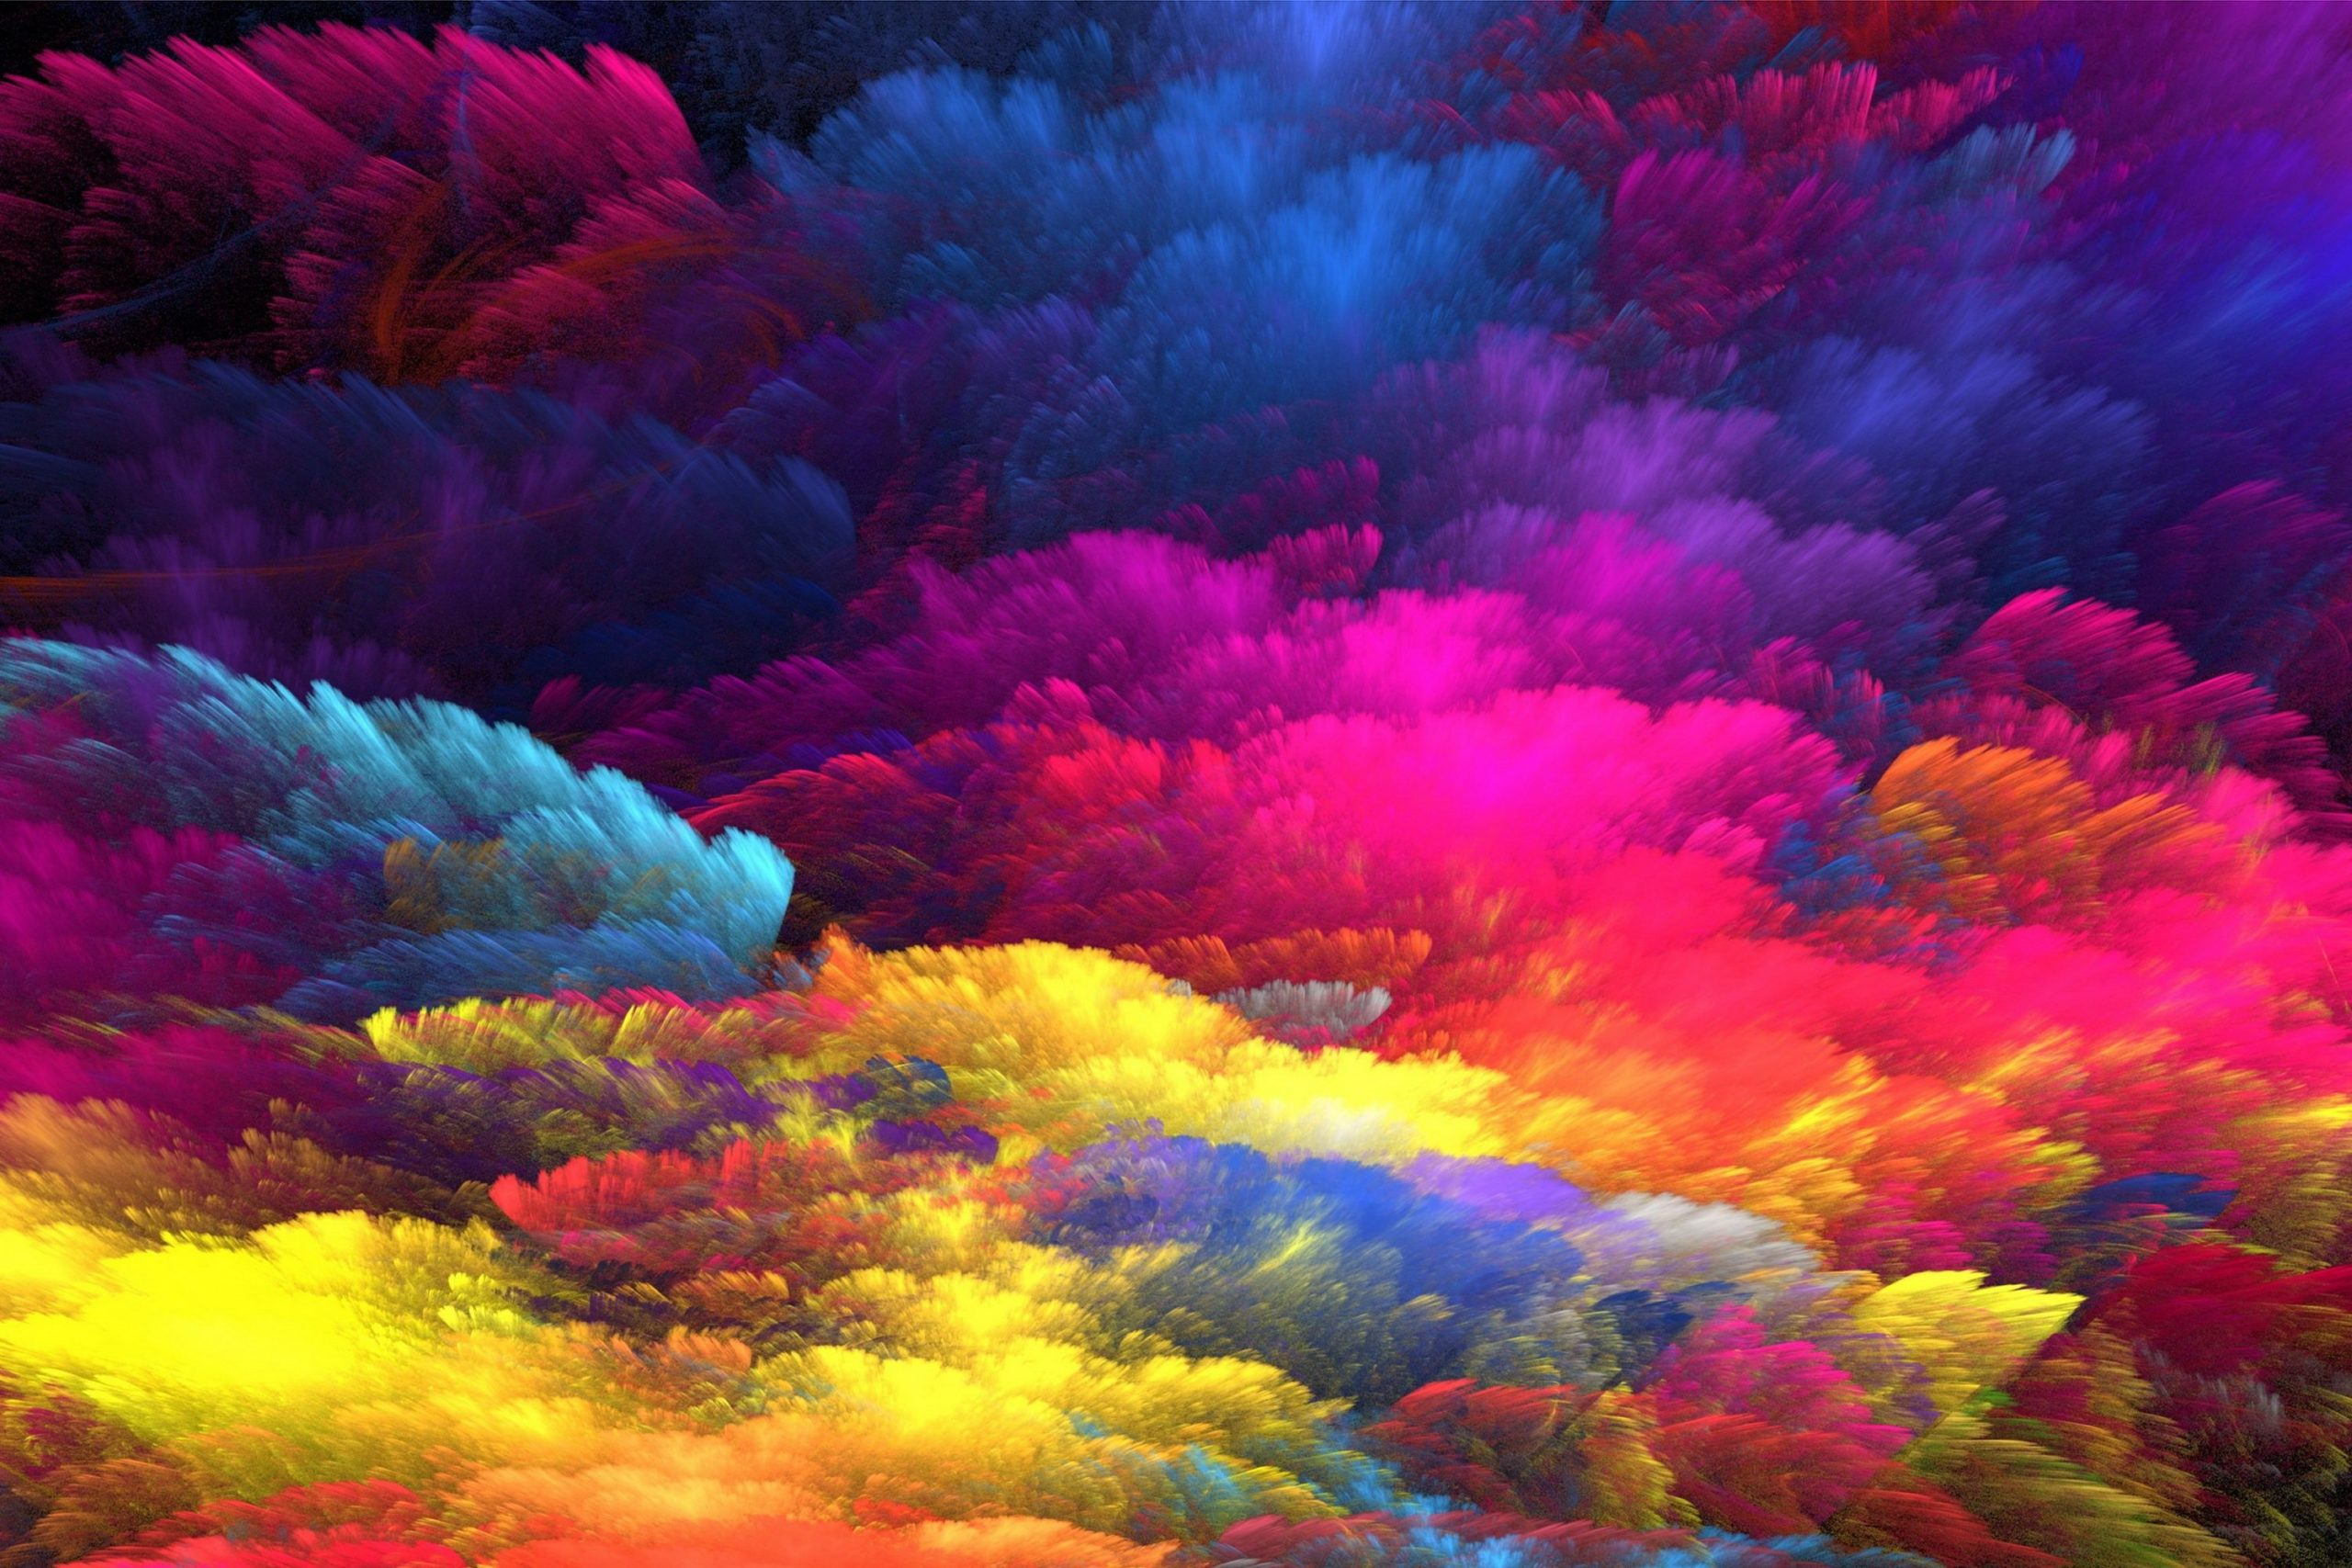 colourful hd wallpapers 1080p